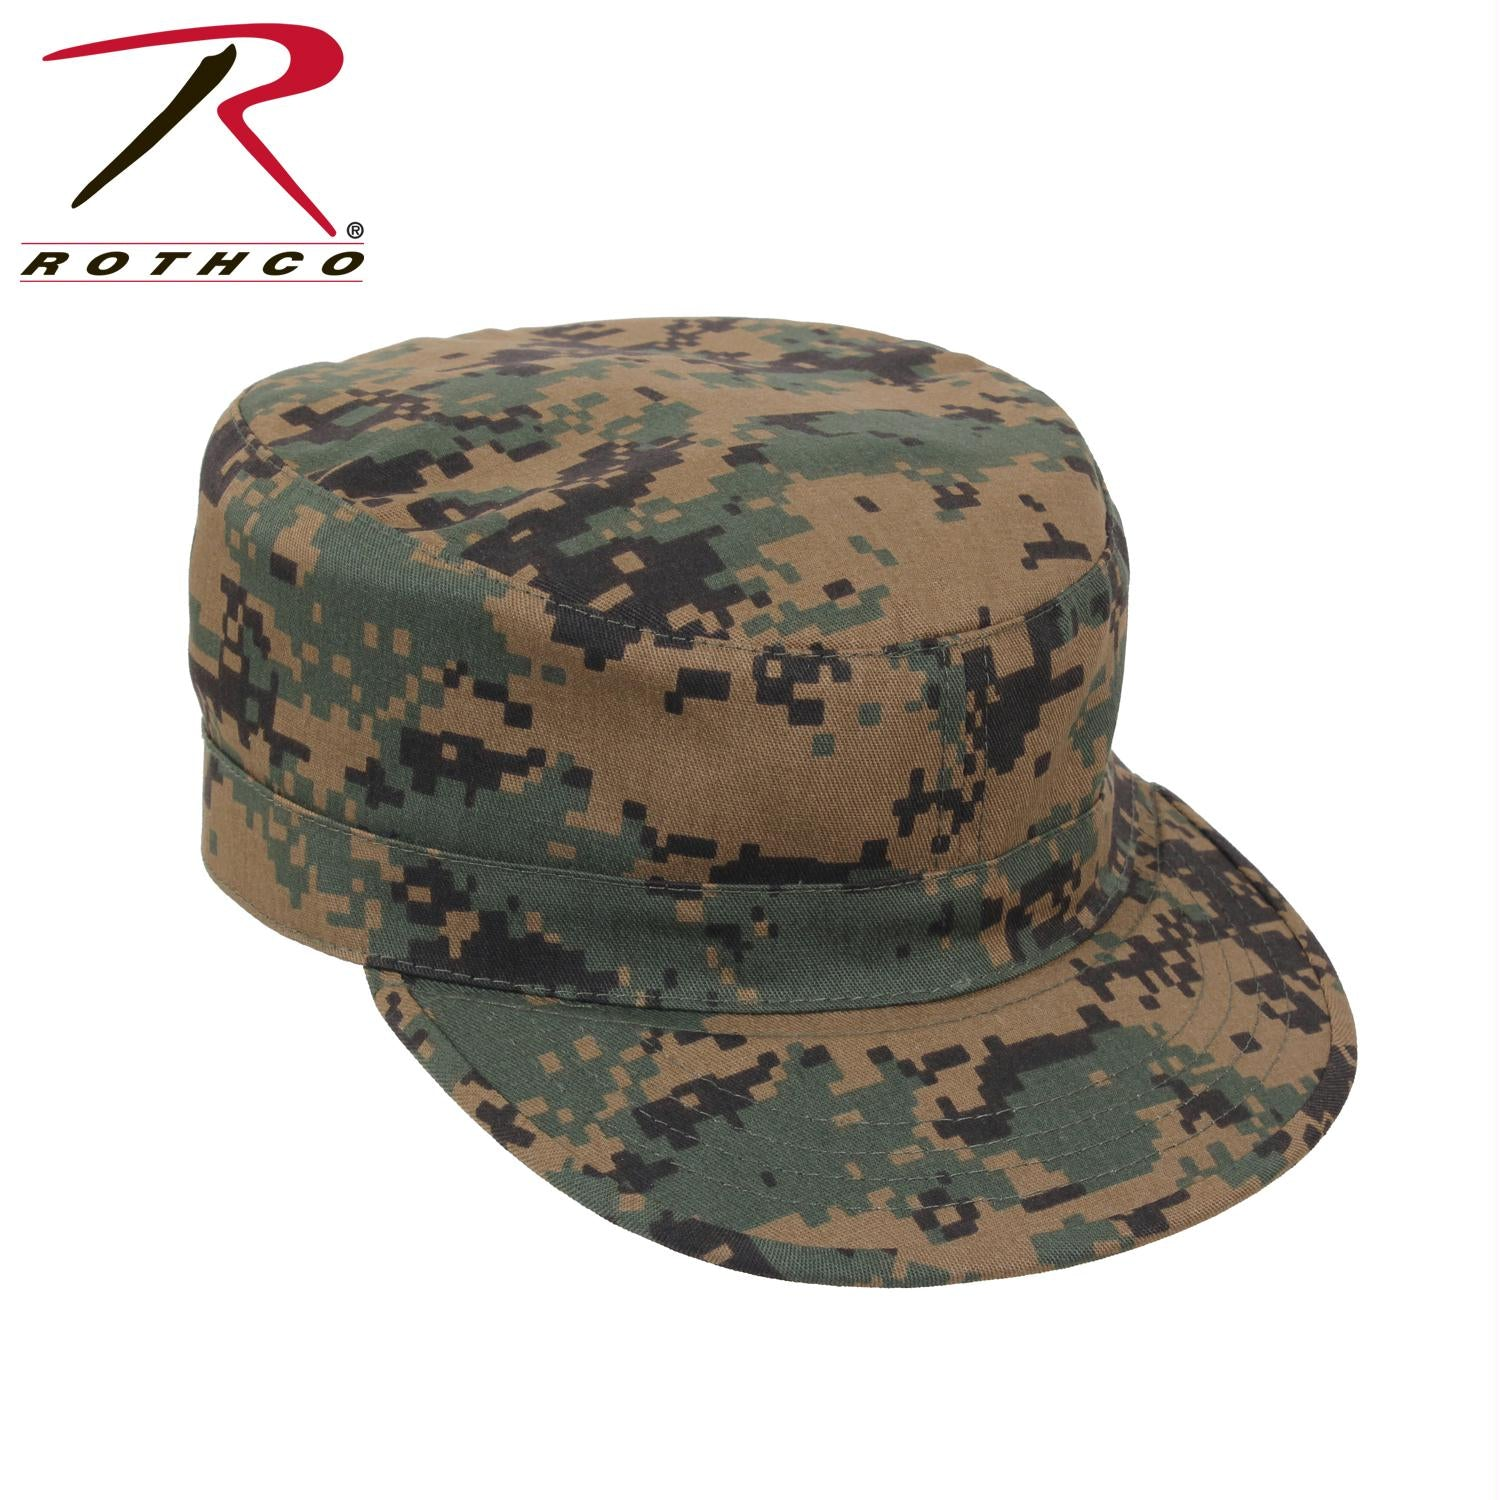 Rothco Adjustable Camo Fatigue Cap - Woodland Digital Camo